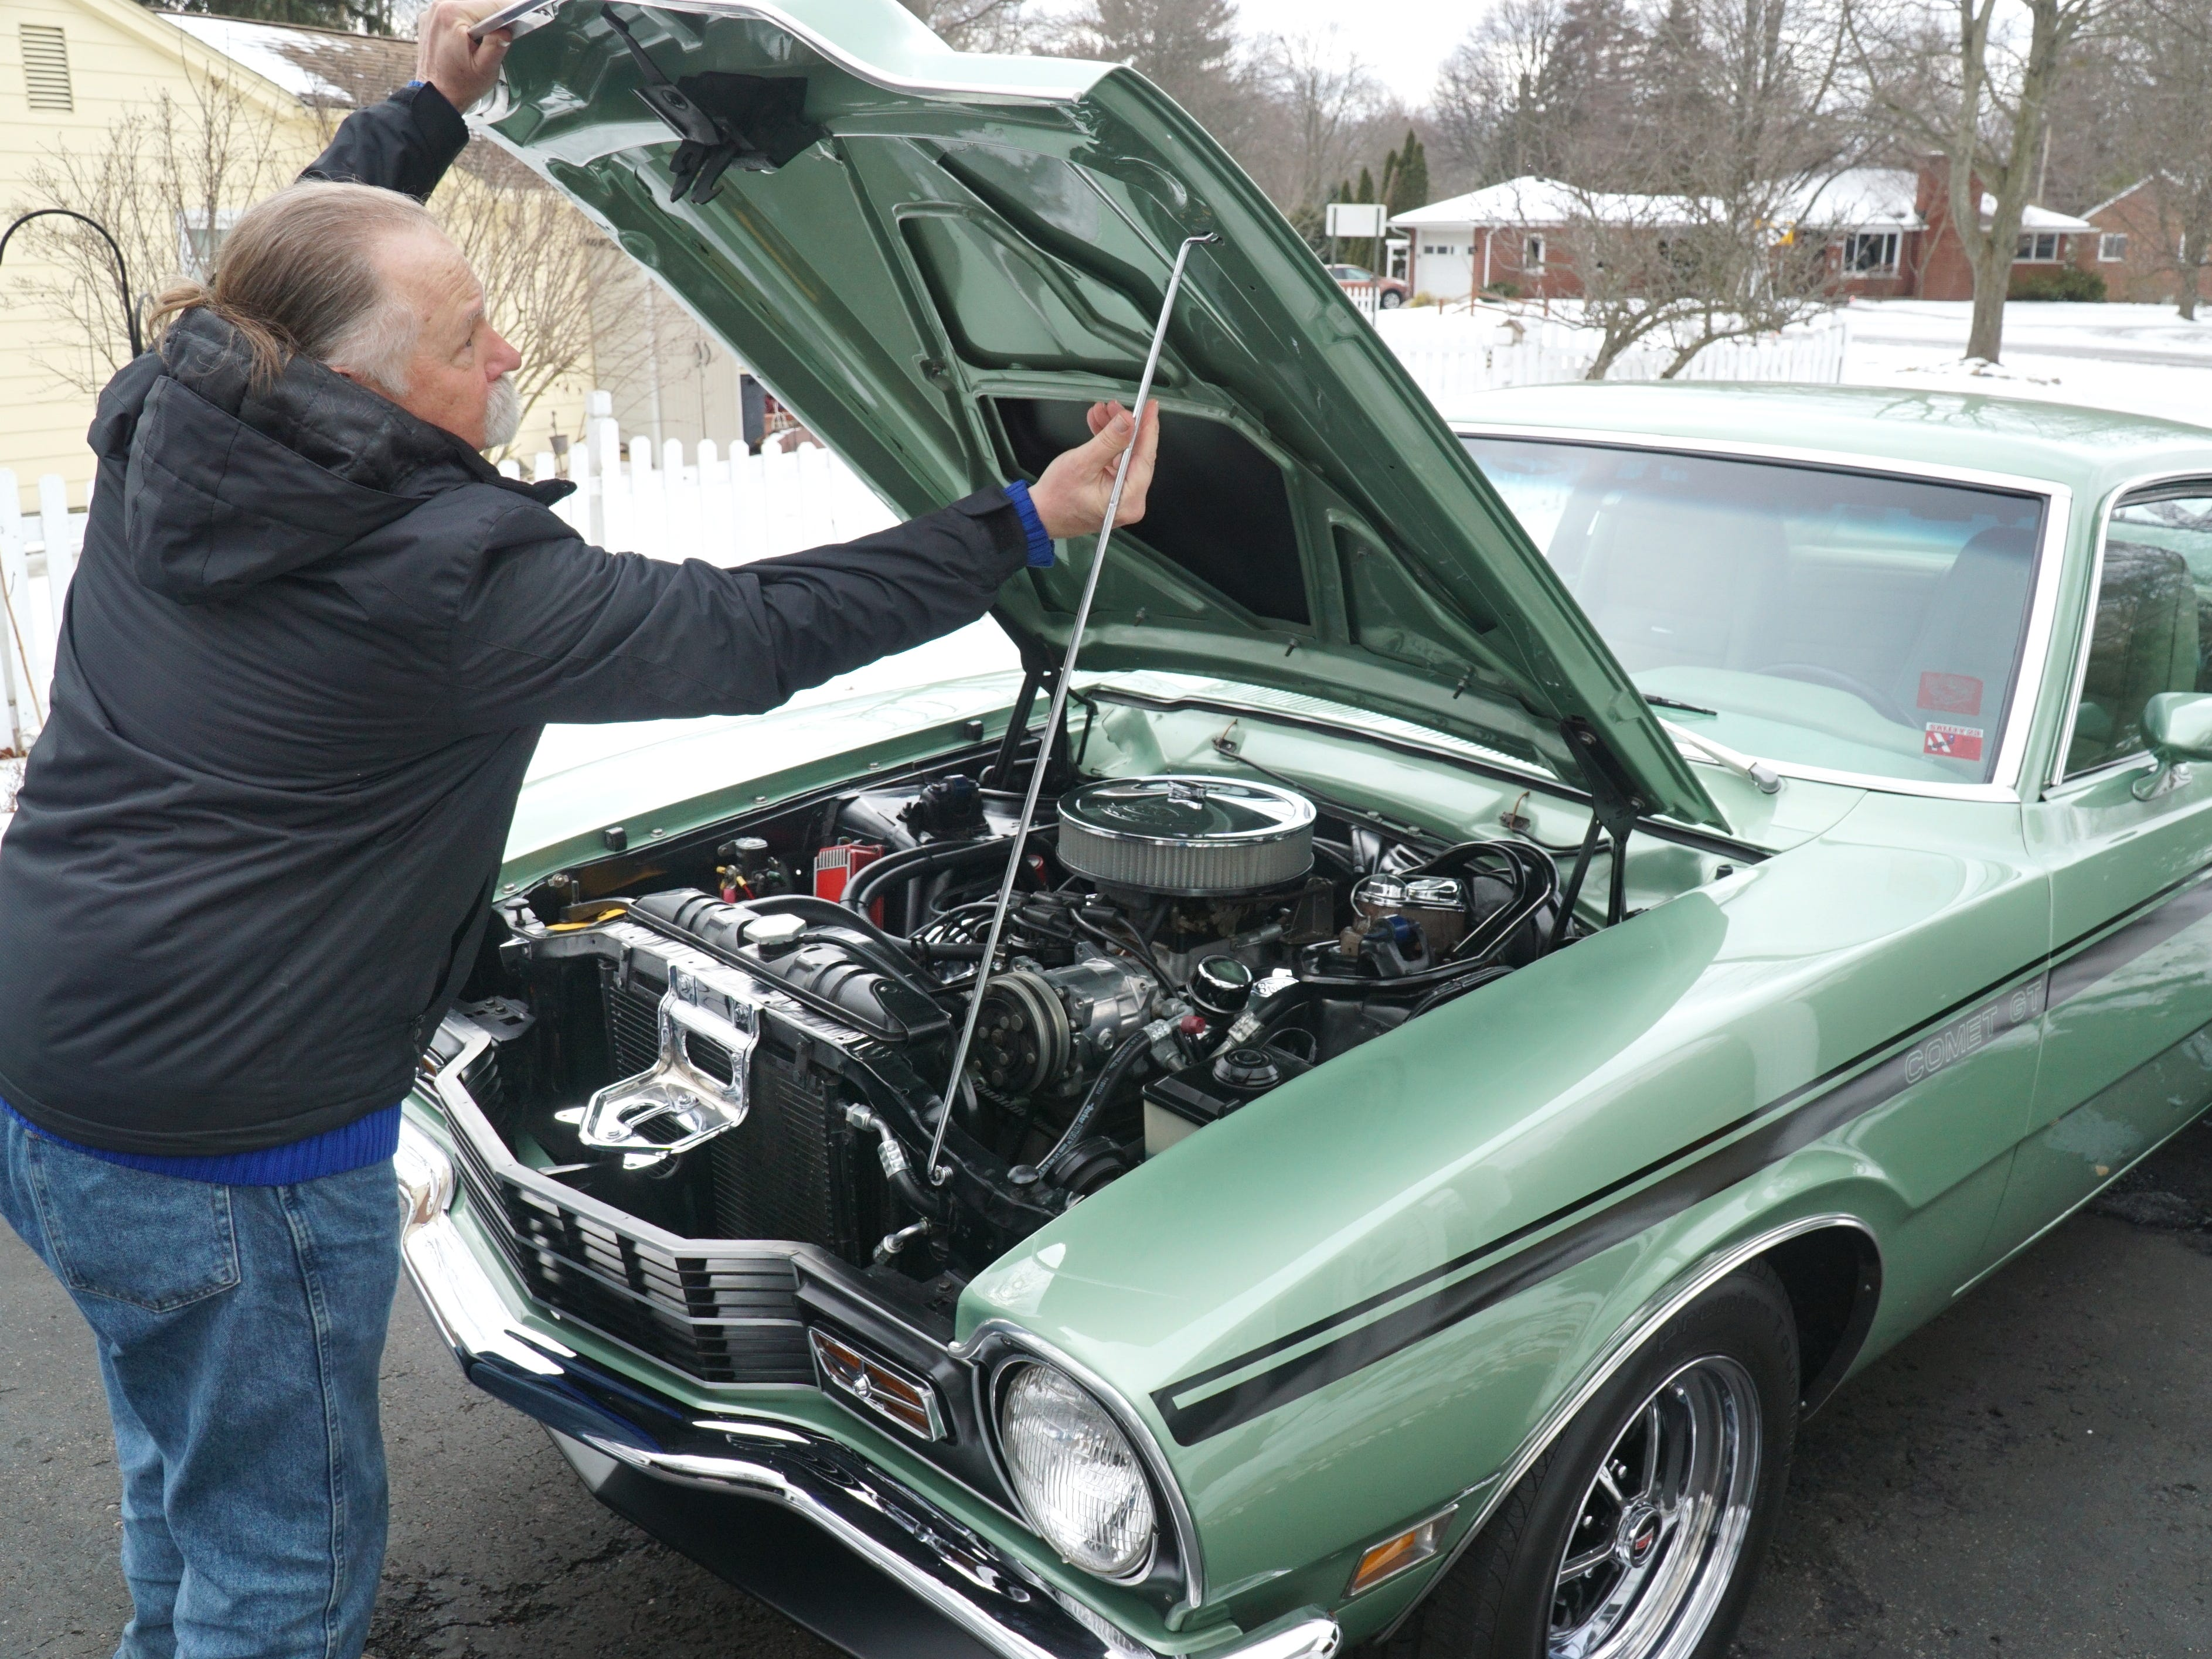 The interior of Livonia resident Mick Stolarczyk's opens up the hood of his '71 Mercury Comet. He'll be showing the car that he bought in 2007 at this year's Autorama Show in Detroit which begins on Marchn 1 at Cobo Hall. Stolarczyk owned a Comet in the early 70s before he went into the Air Force - and has spent about four years restoring this current model - which he'll drive to car shows - not trailer.